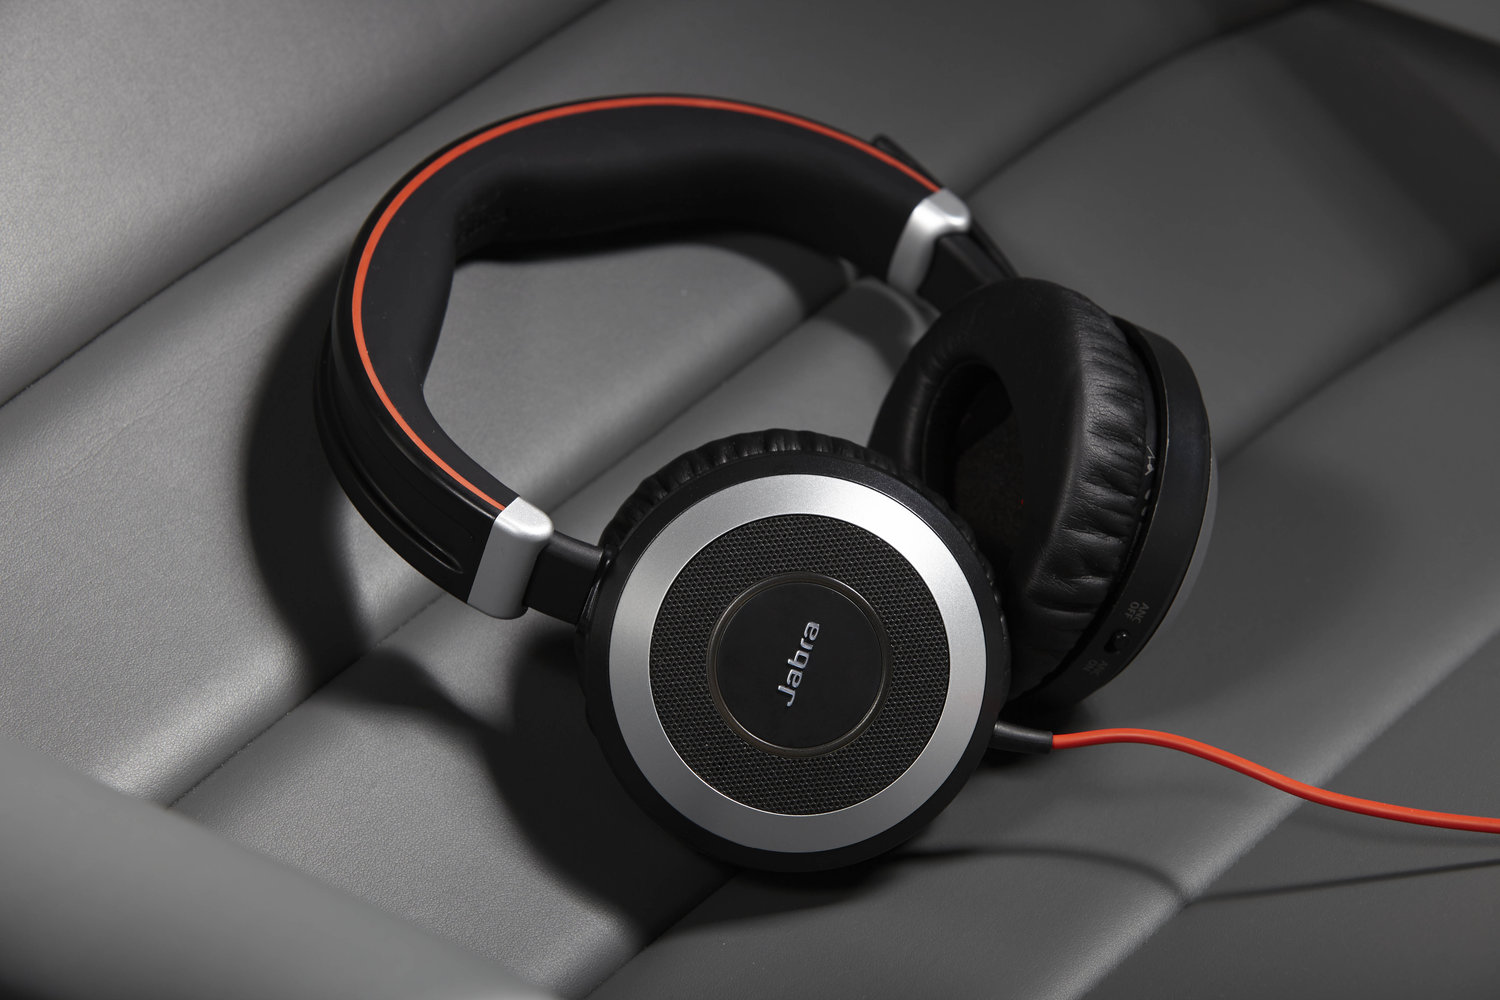 Jabra+Headphones